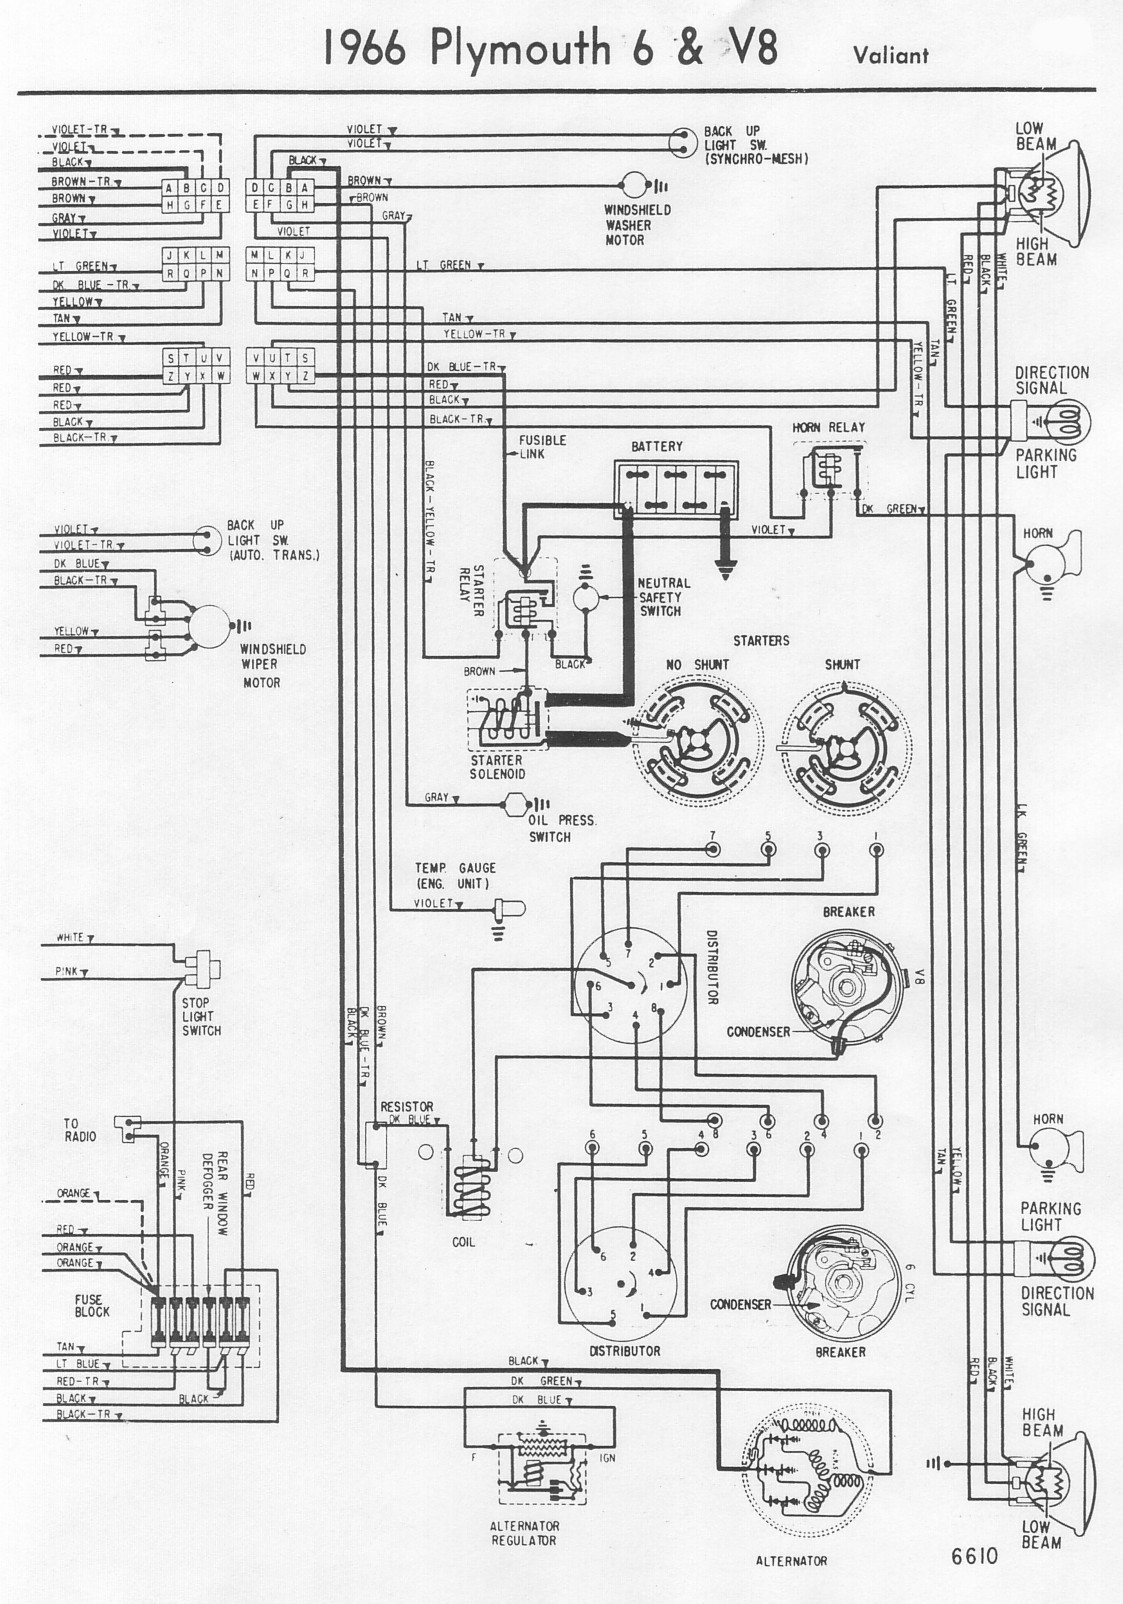 1964 Impala Headlight Diagram 29 Wiring Images 77 Dodge Truck Diagrams 66valiantbquality